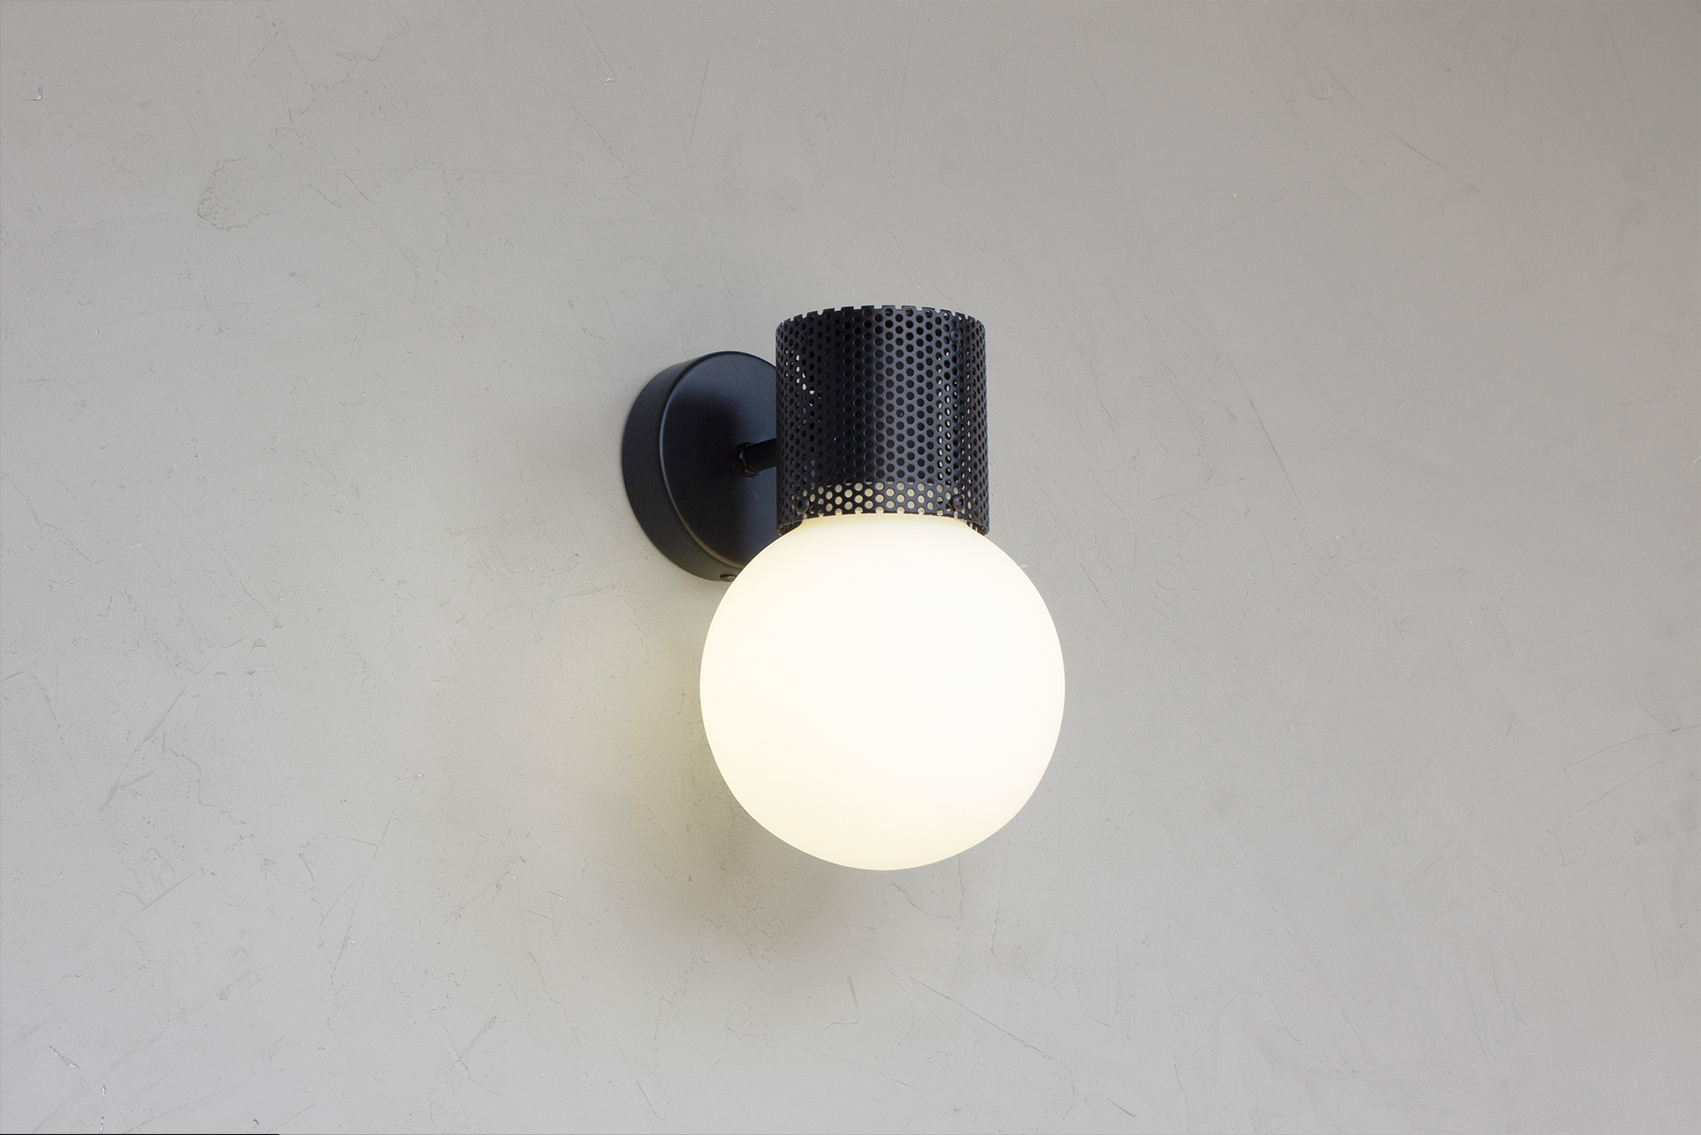 Perf wall sconce in all black -on